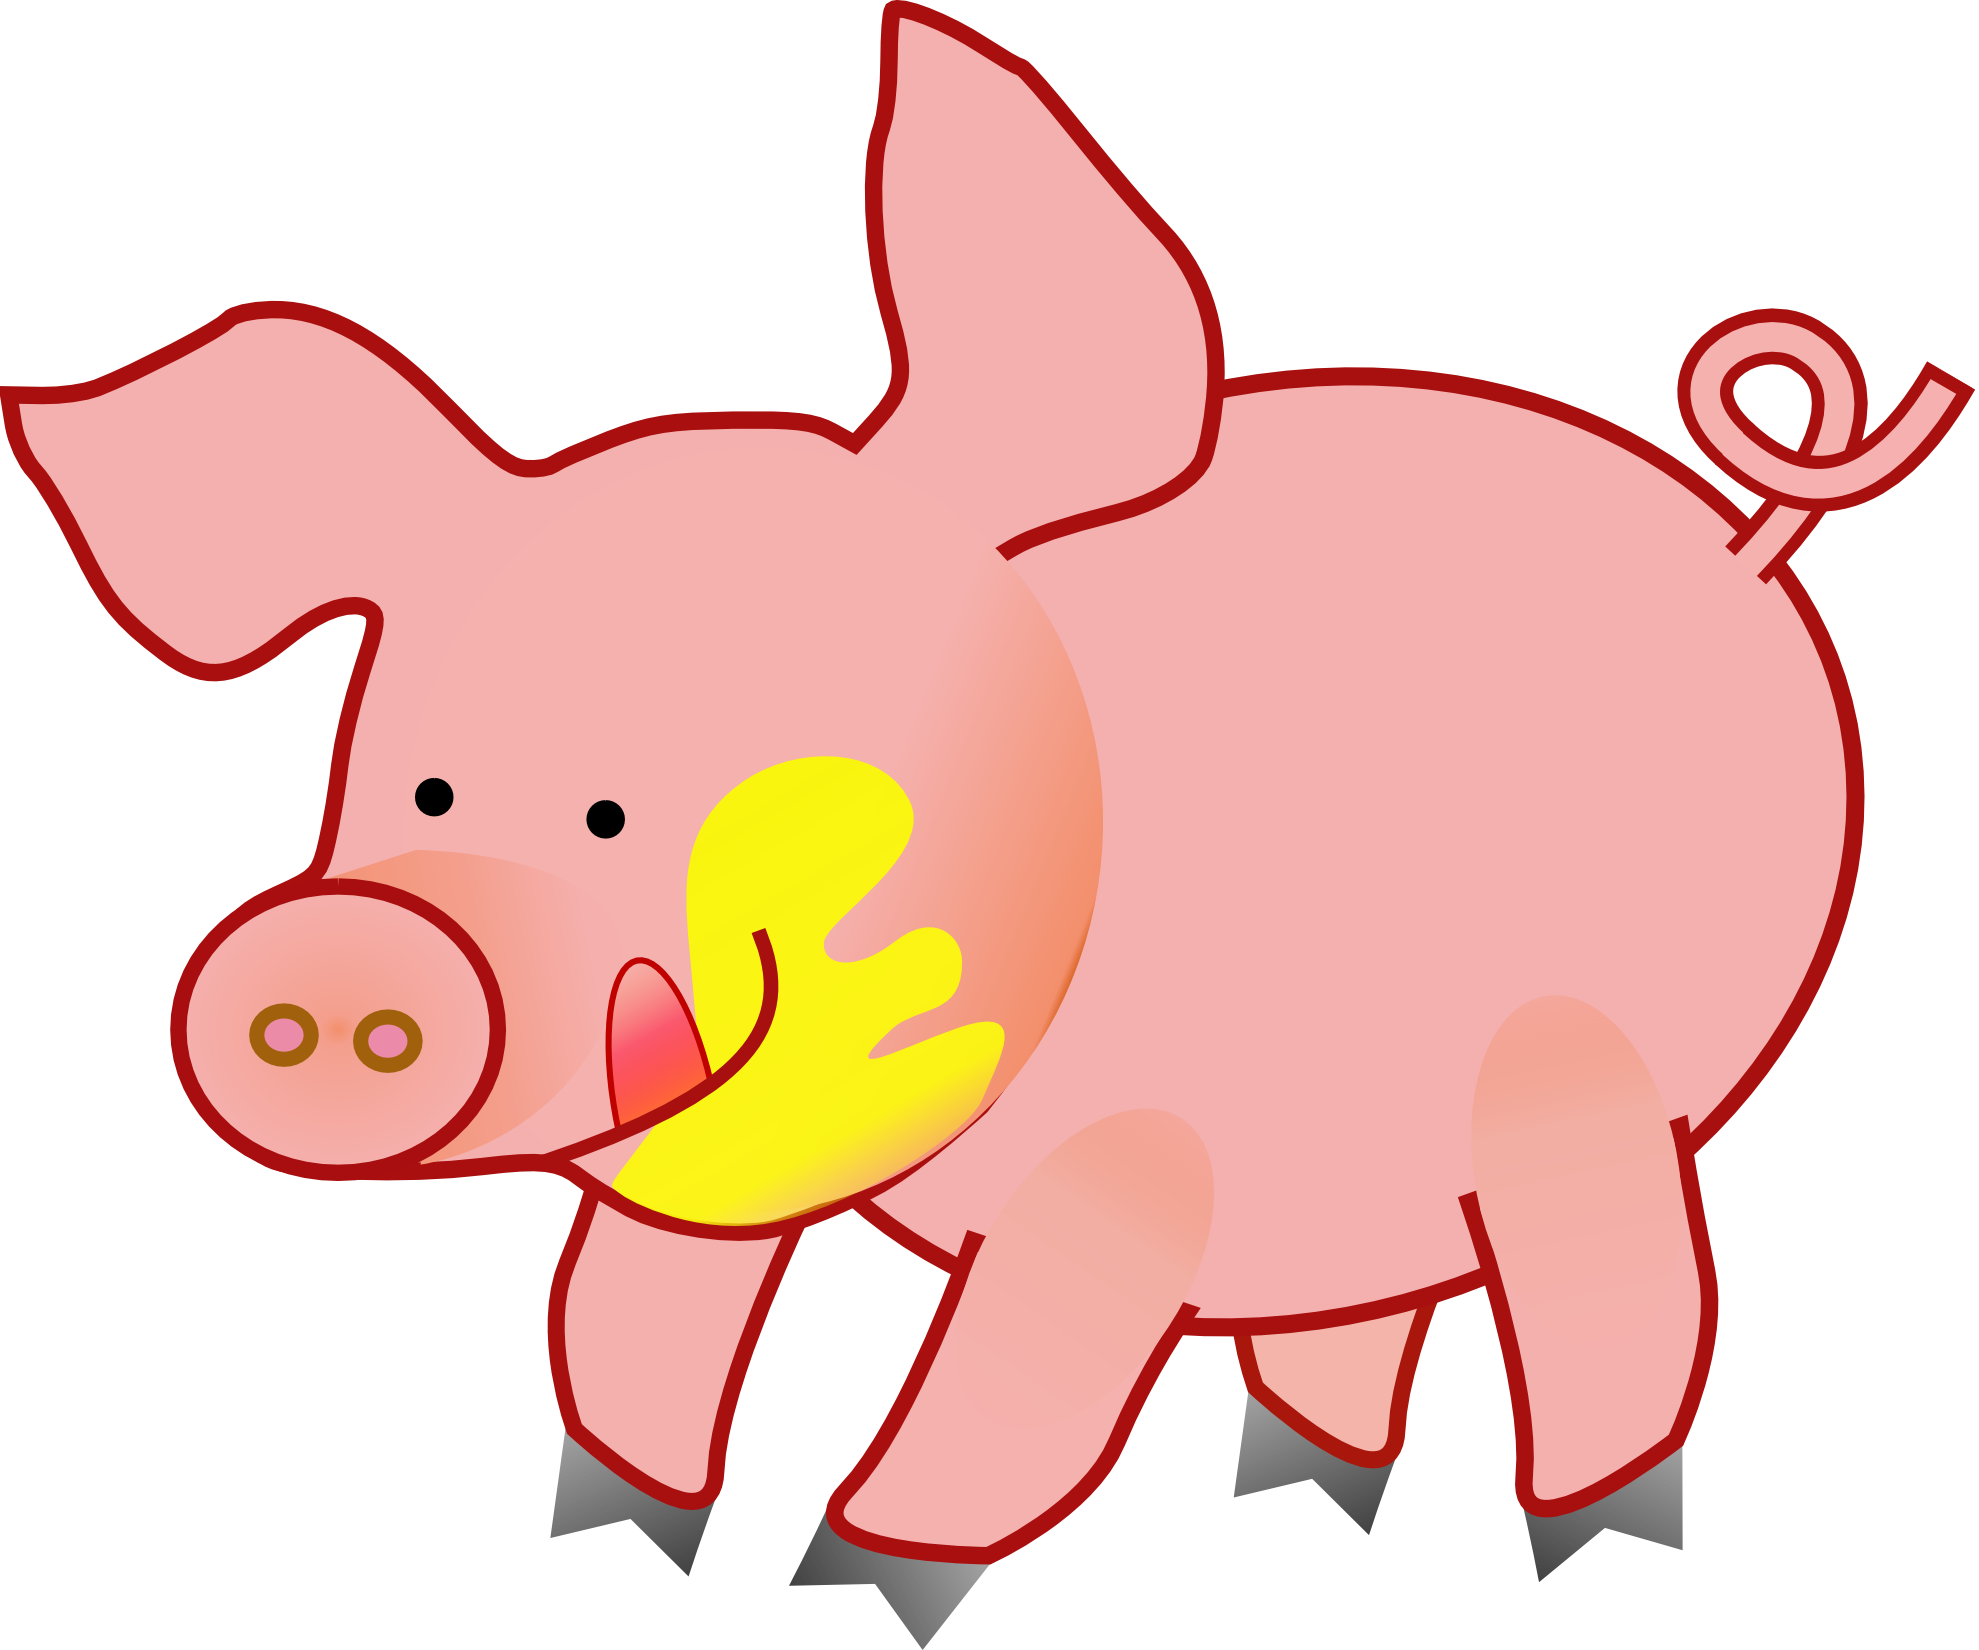 Pork drawing duroc pig